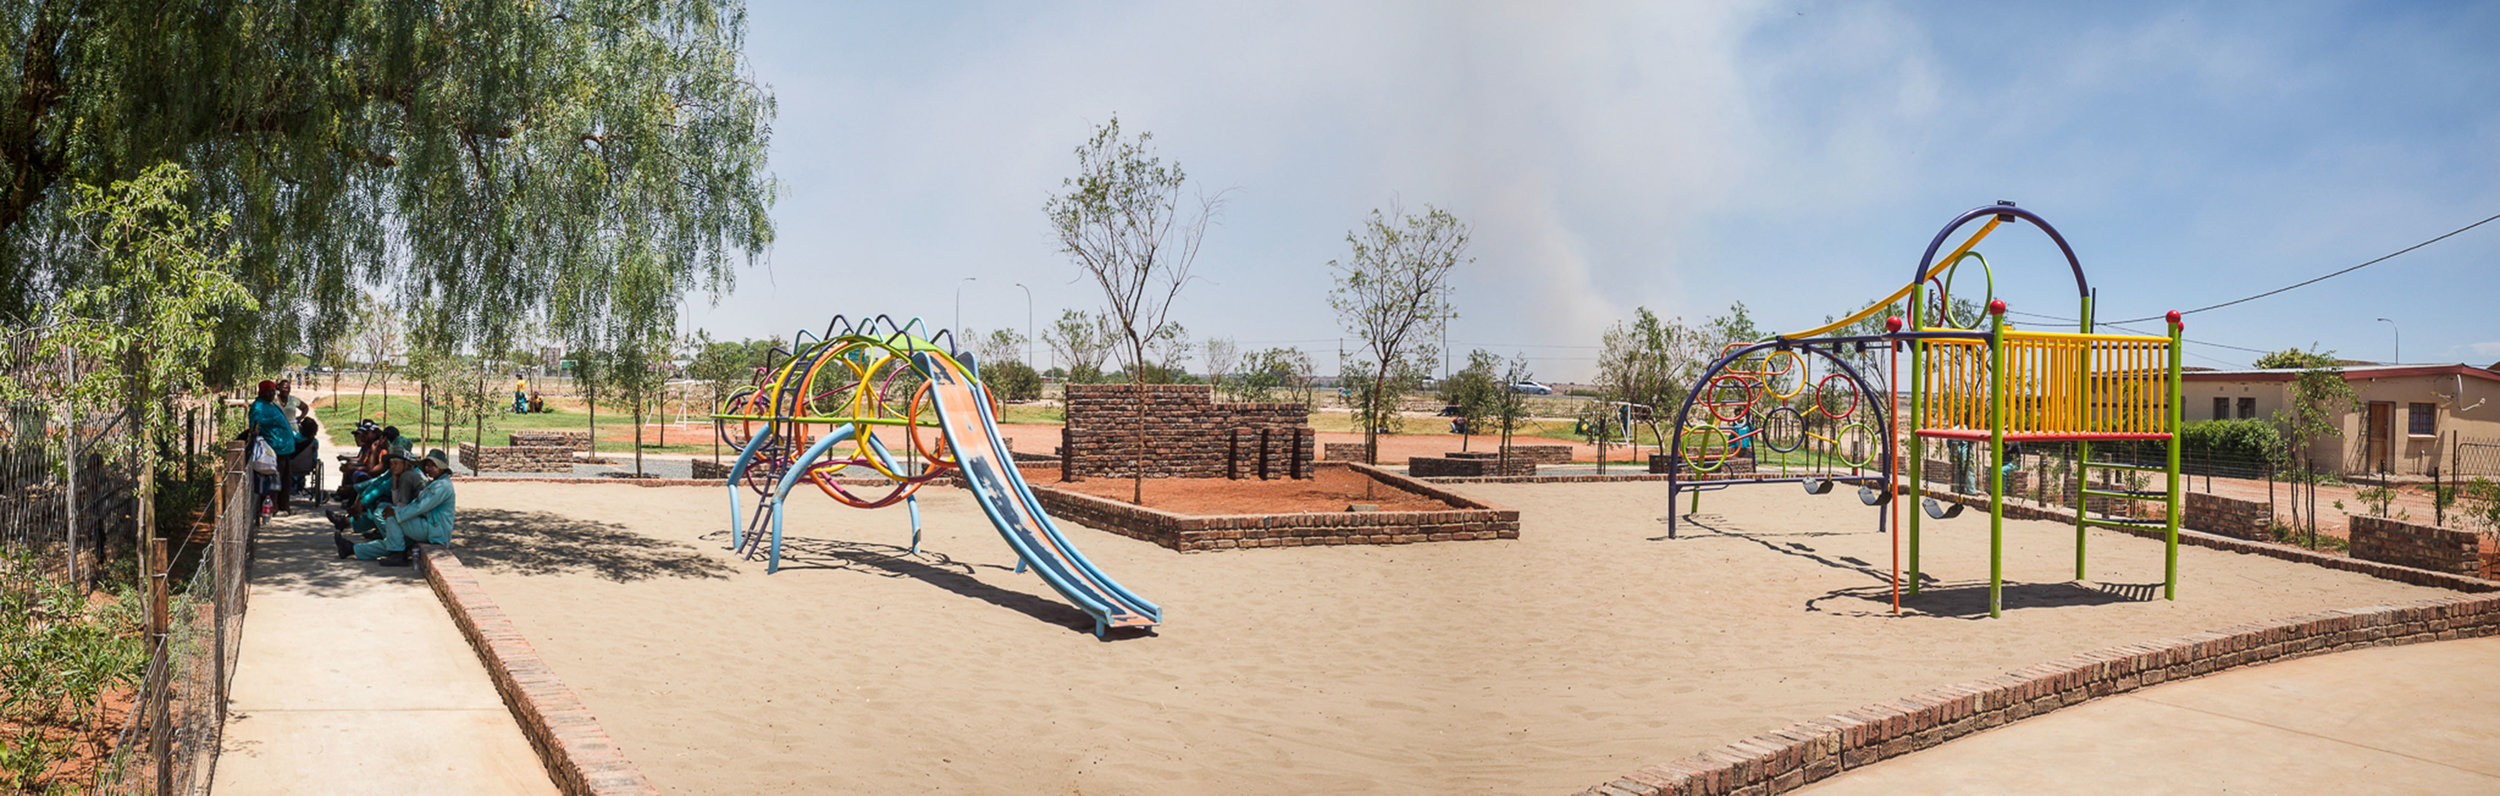 Hopetown Community Park  - National Department of Environmental Affairs